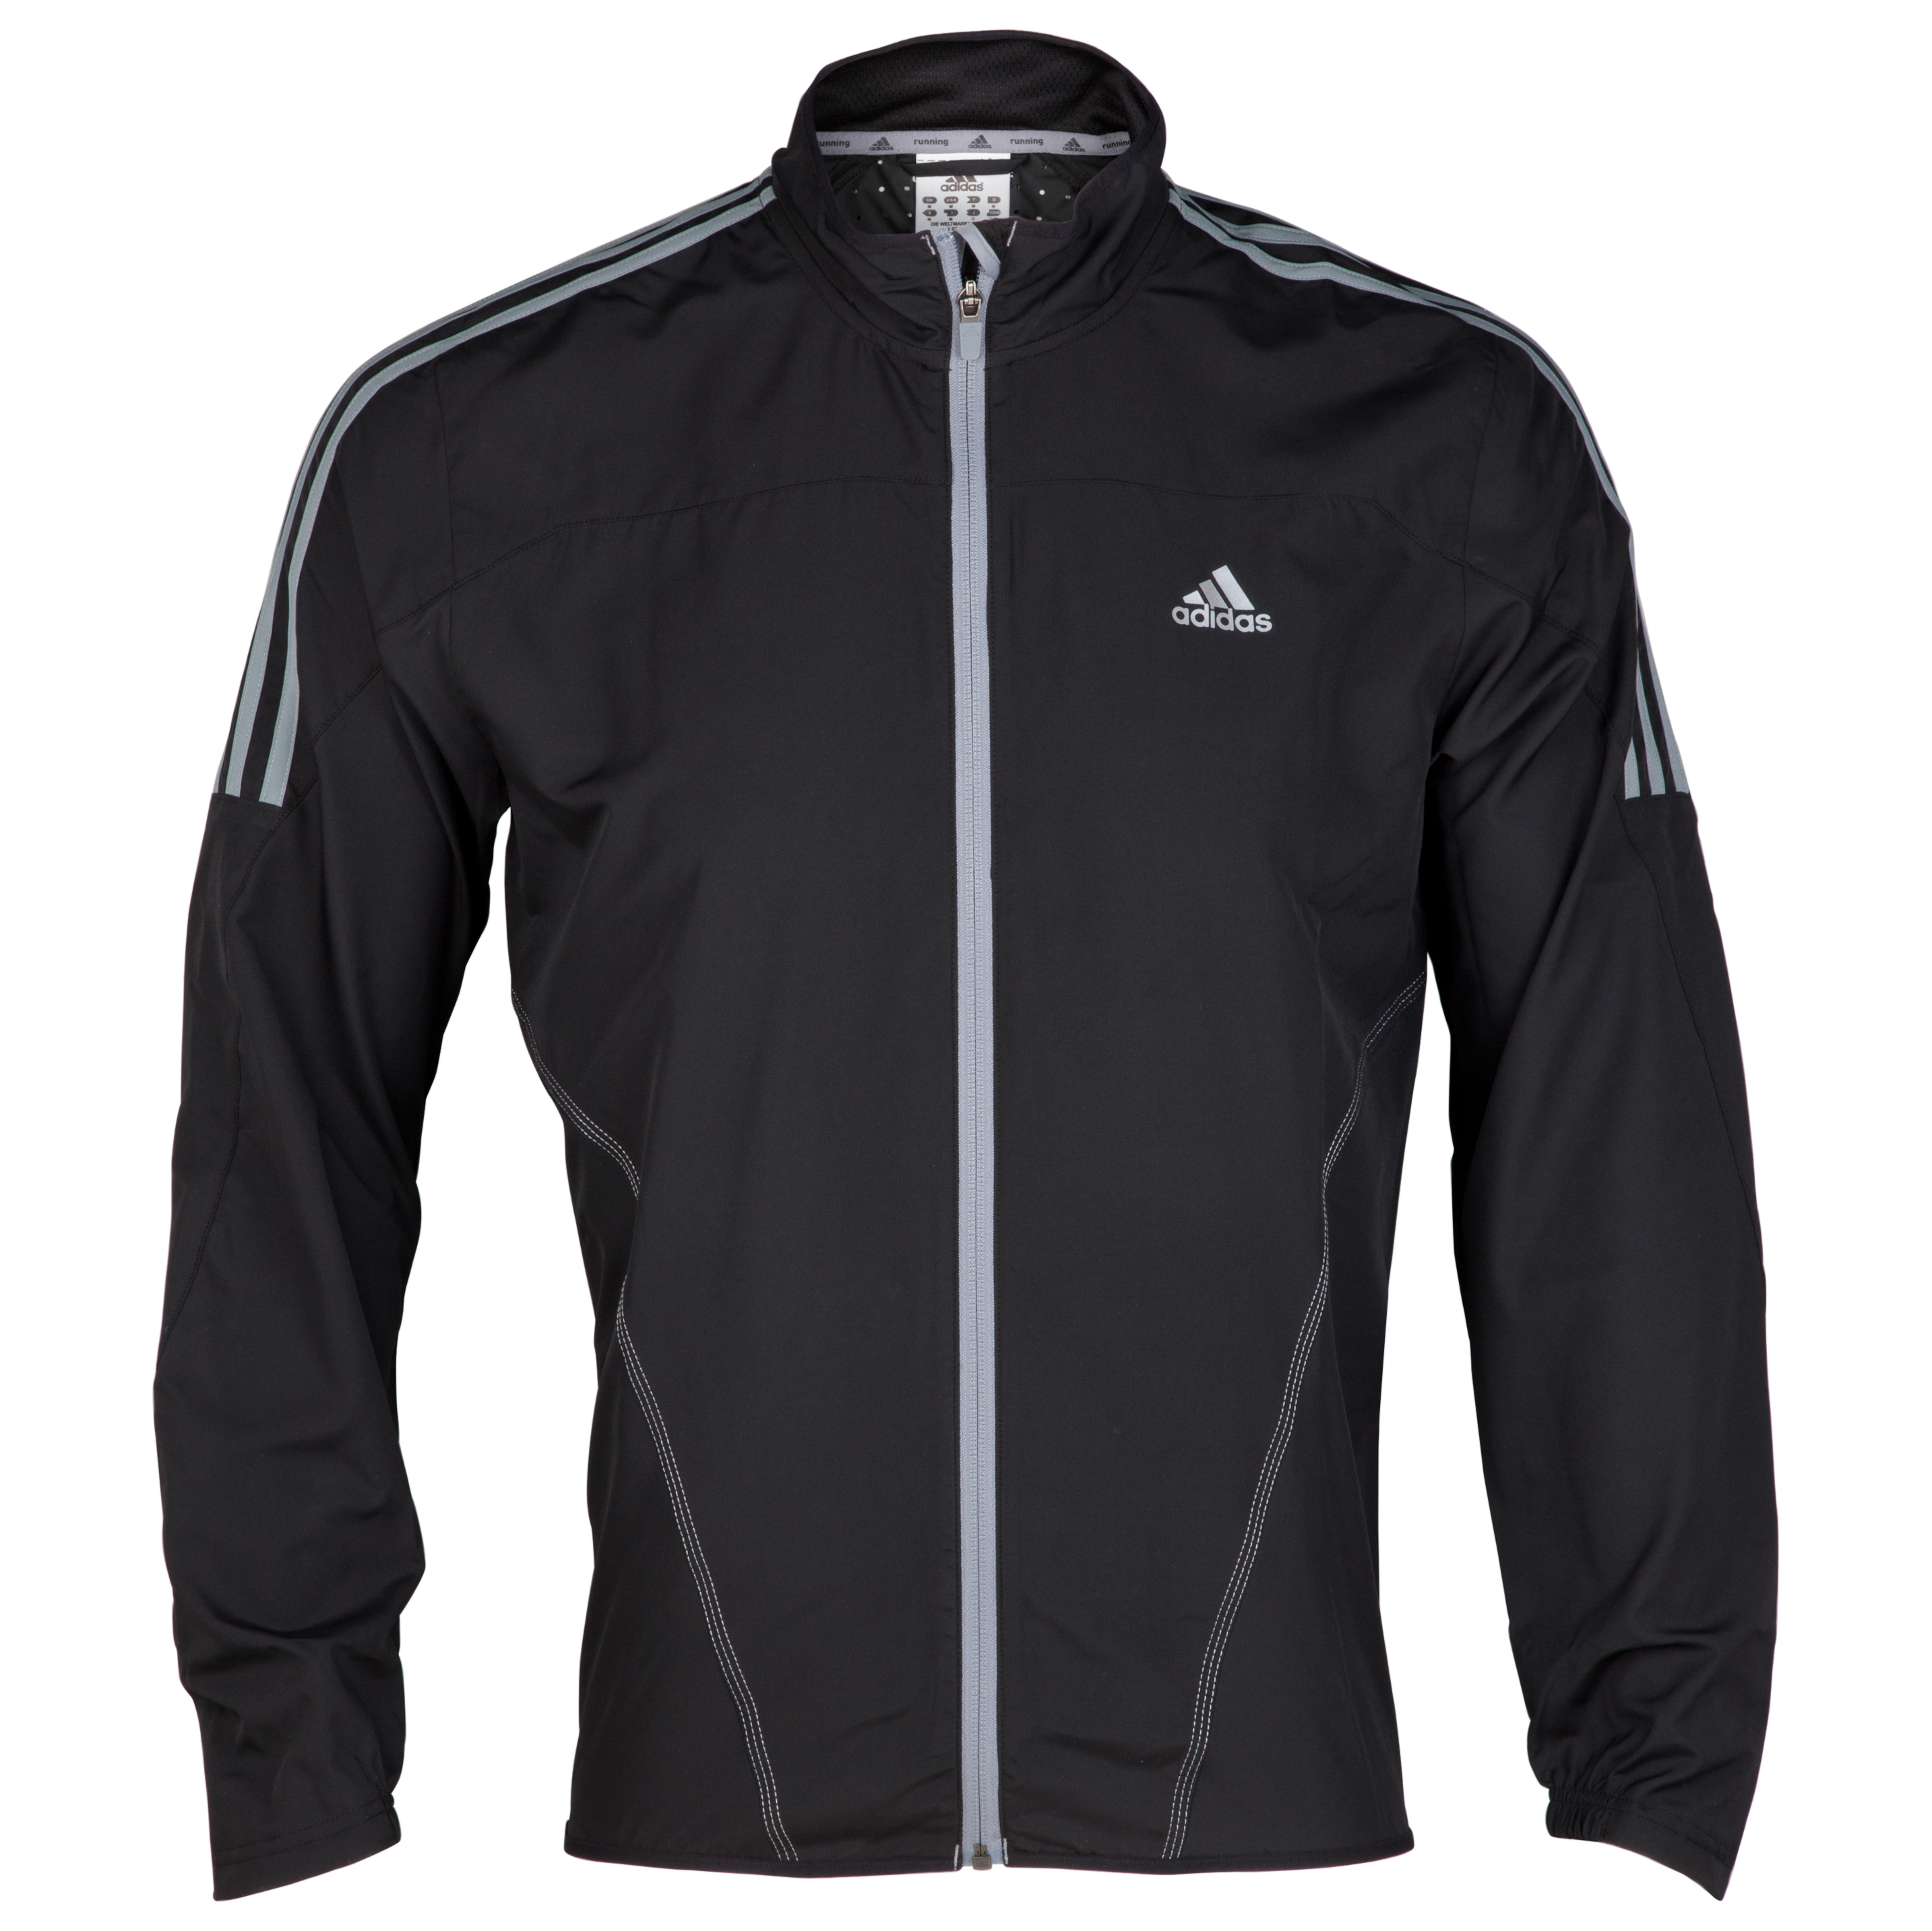 Adidas Response DS Wind Jacket - Black/Tech Grey